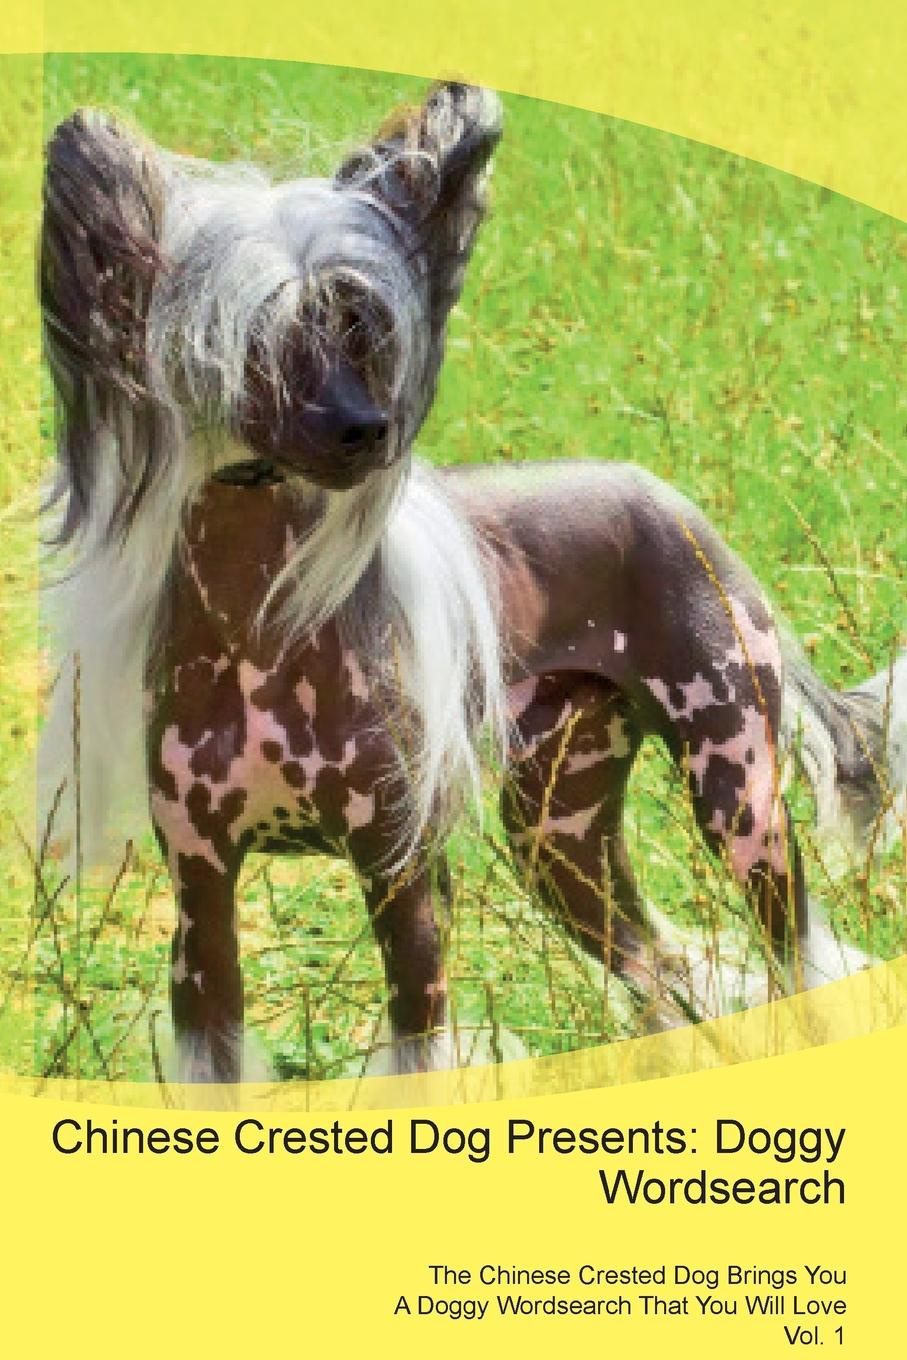 Doggy Puzzles Chinese Crested Dog Presents. Doggy Wordsearch The Chinese Crested Dog Brings You A Doggy Wordsearch That You Will Love Vol. 1 скальп петуха veniard chinese cock cape